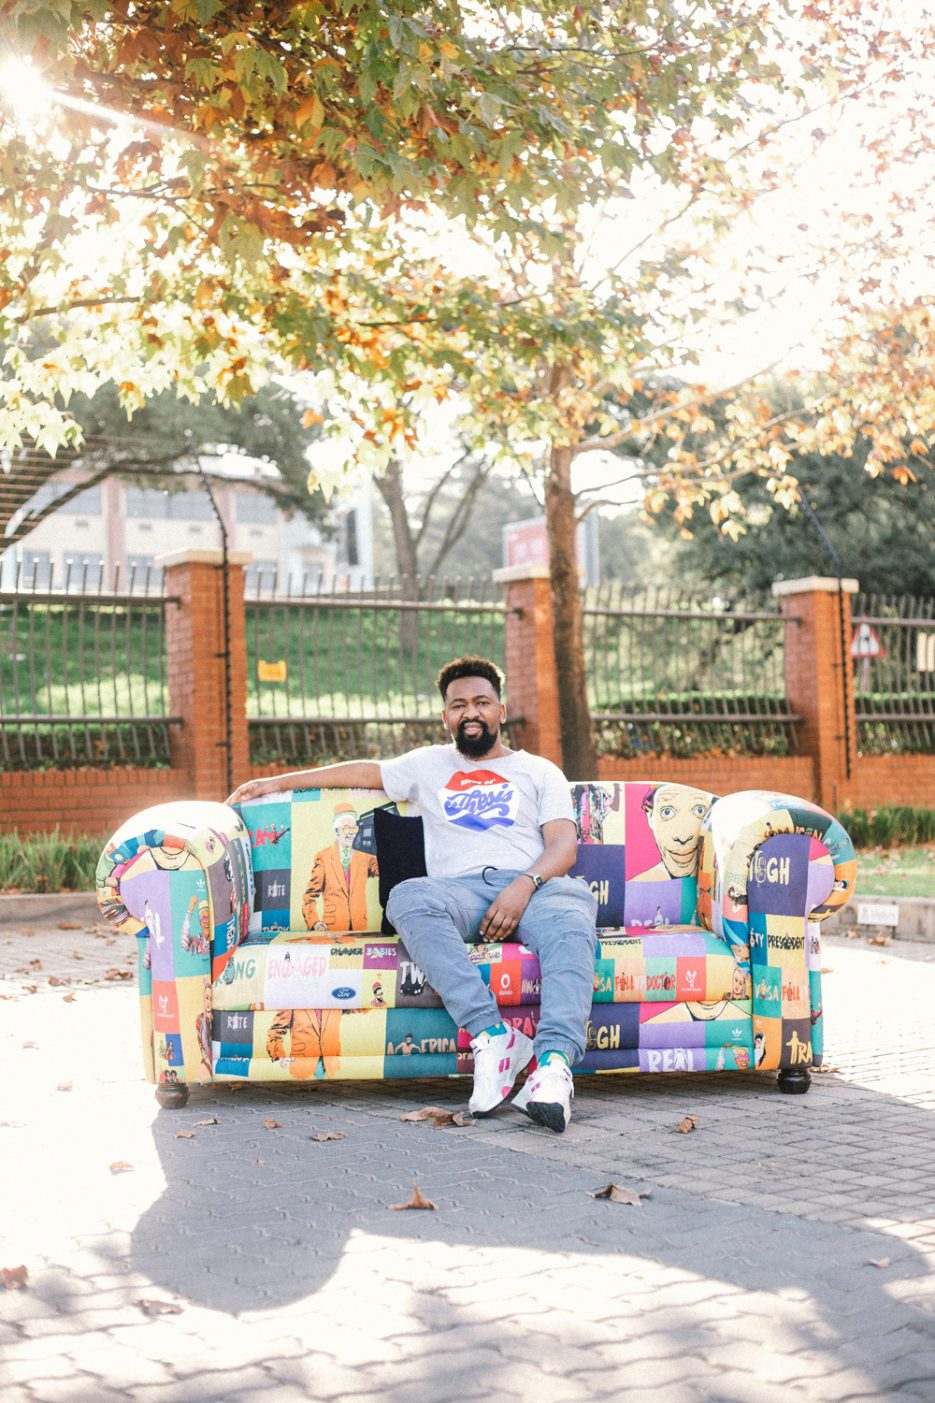 Graphic designer and illustrator David Tshabalala on a couch he designed. Image by Khotso Tsagaane.